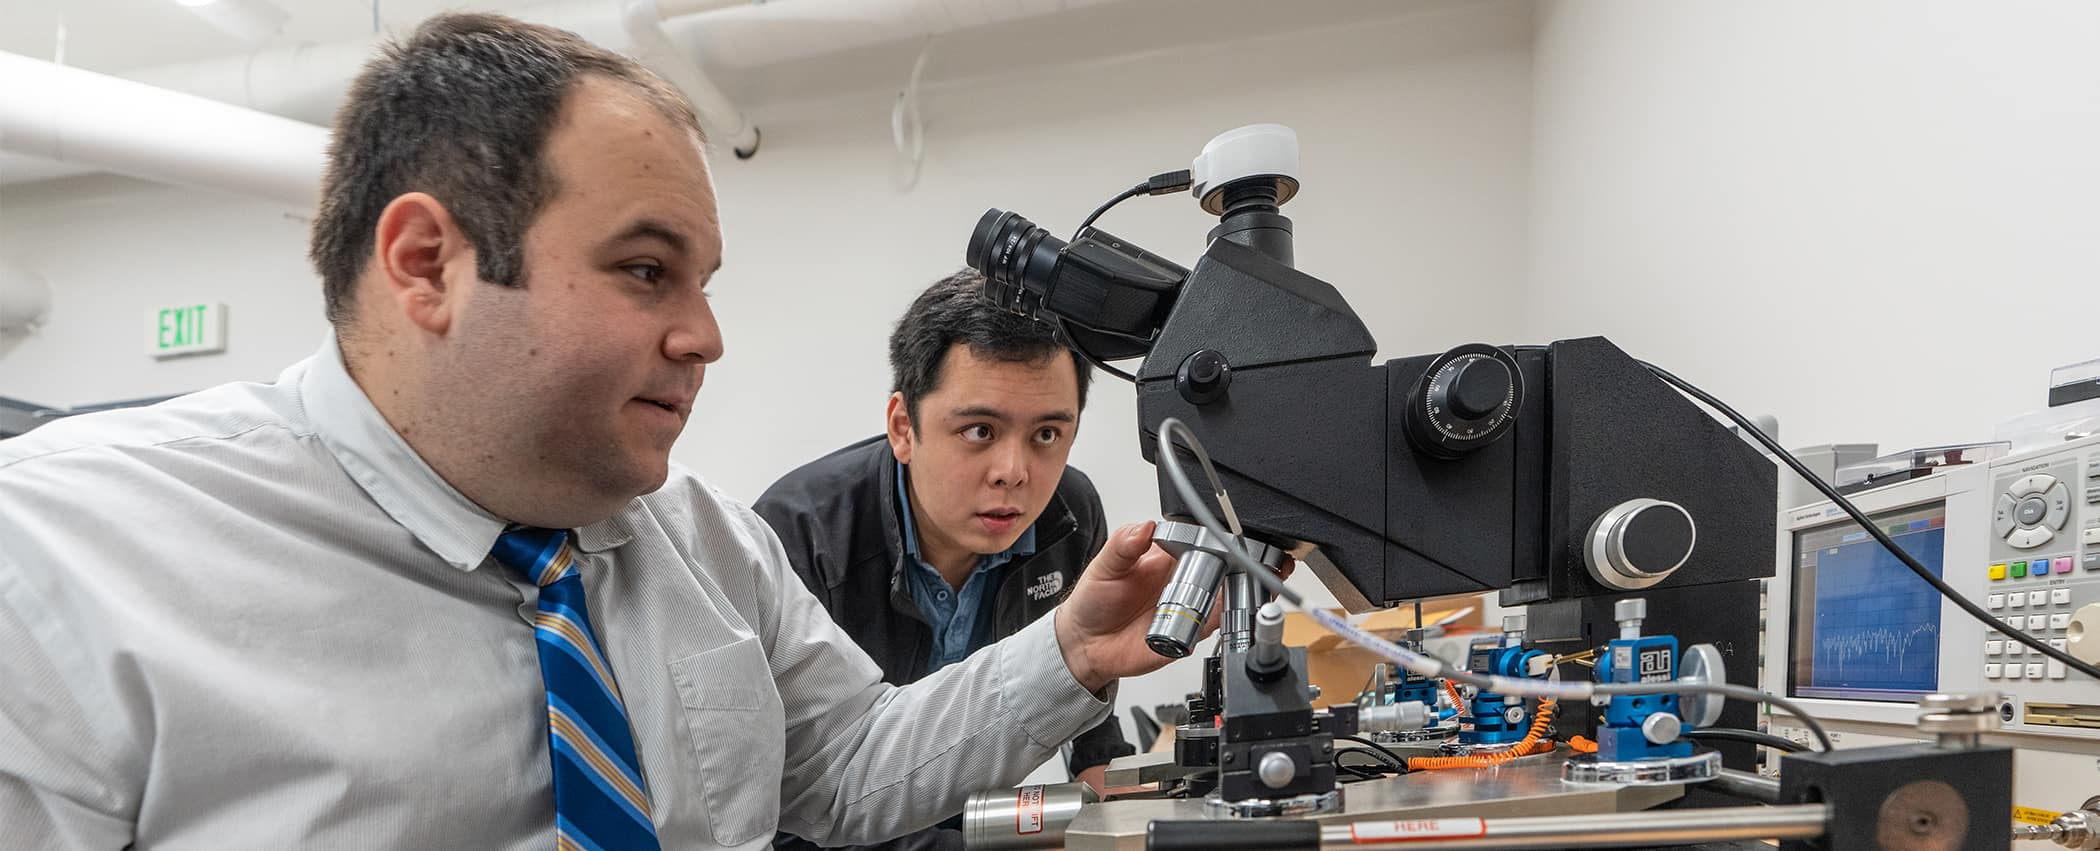 Dr. Eduardo Rojas and a student work on an antenna project.